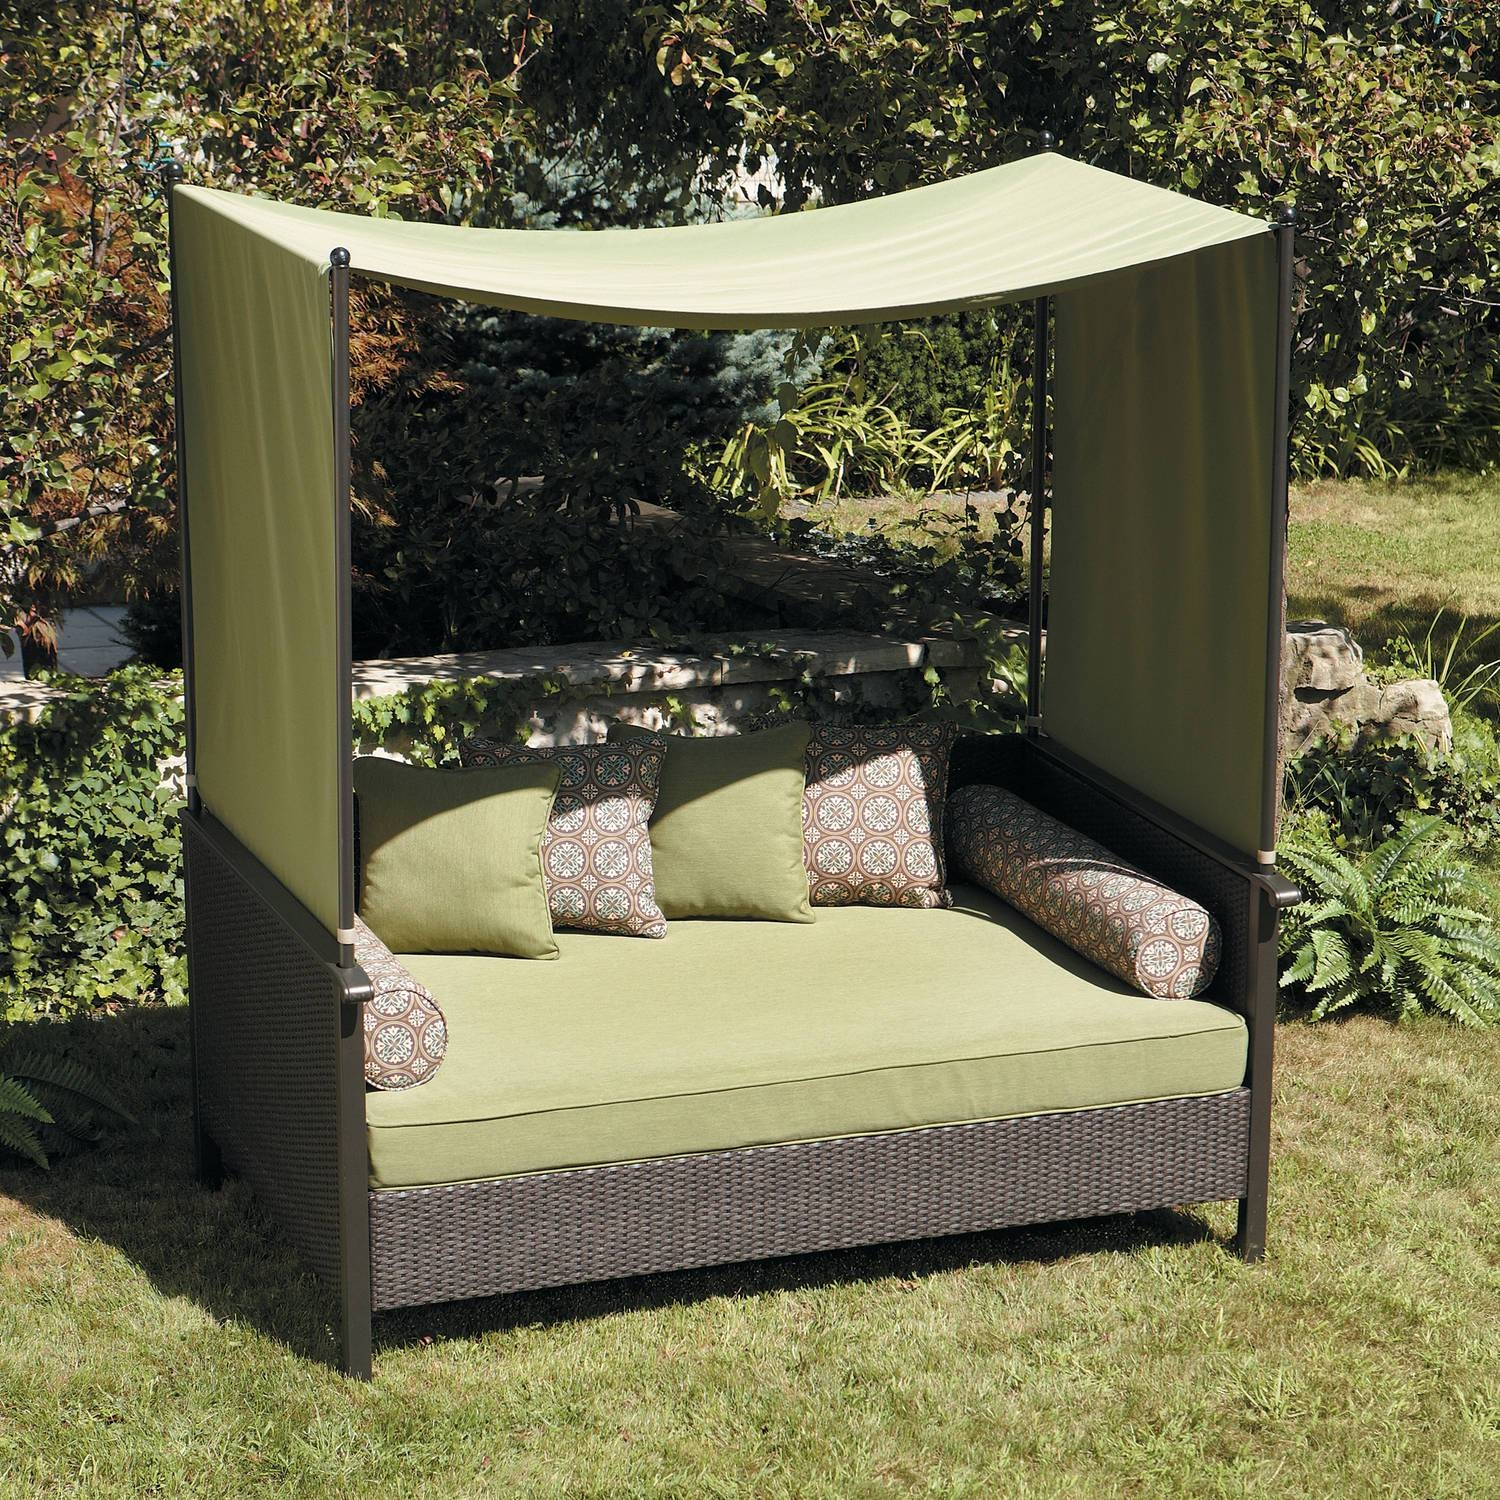 Exterior : Awesome Outdoor Lounge Bed Furniture With Red Canopy in Outdoor Sofas With Canopy (Image 10 of 30)